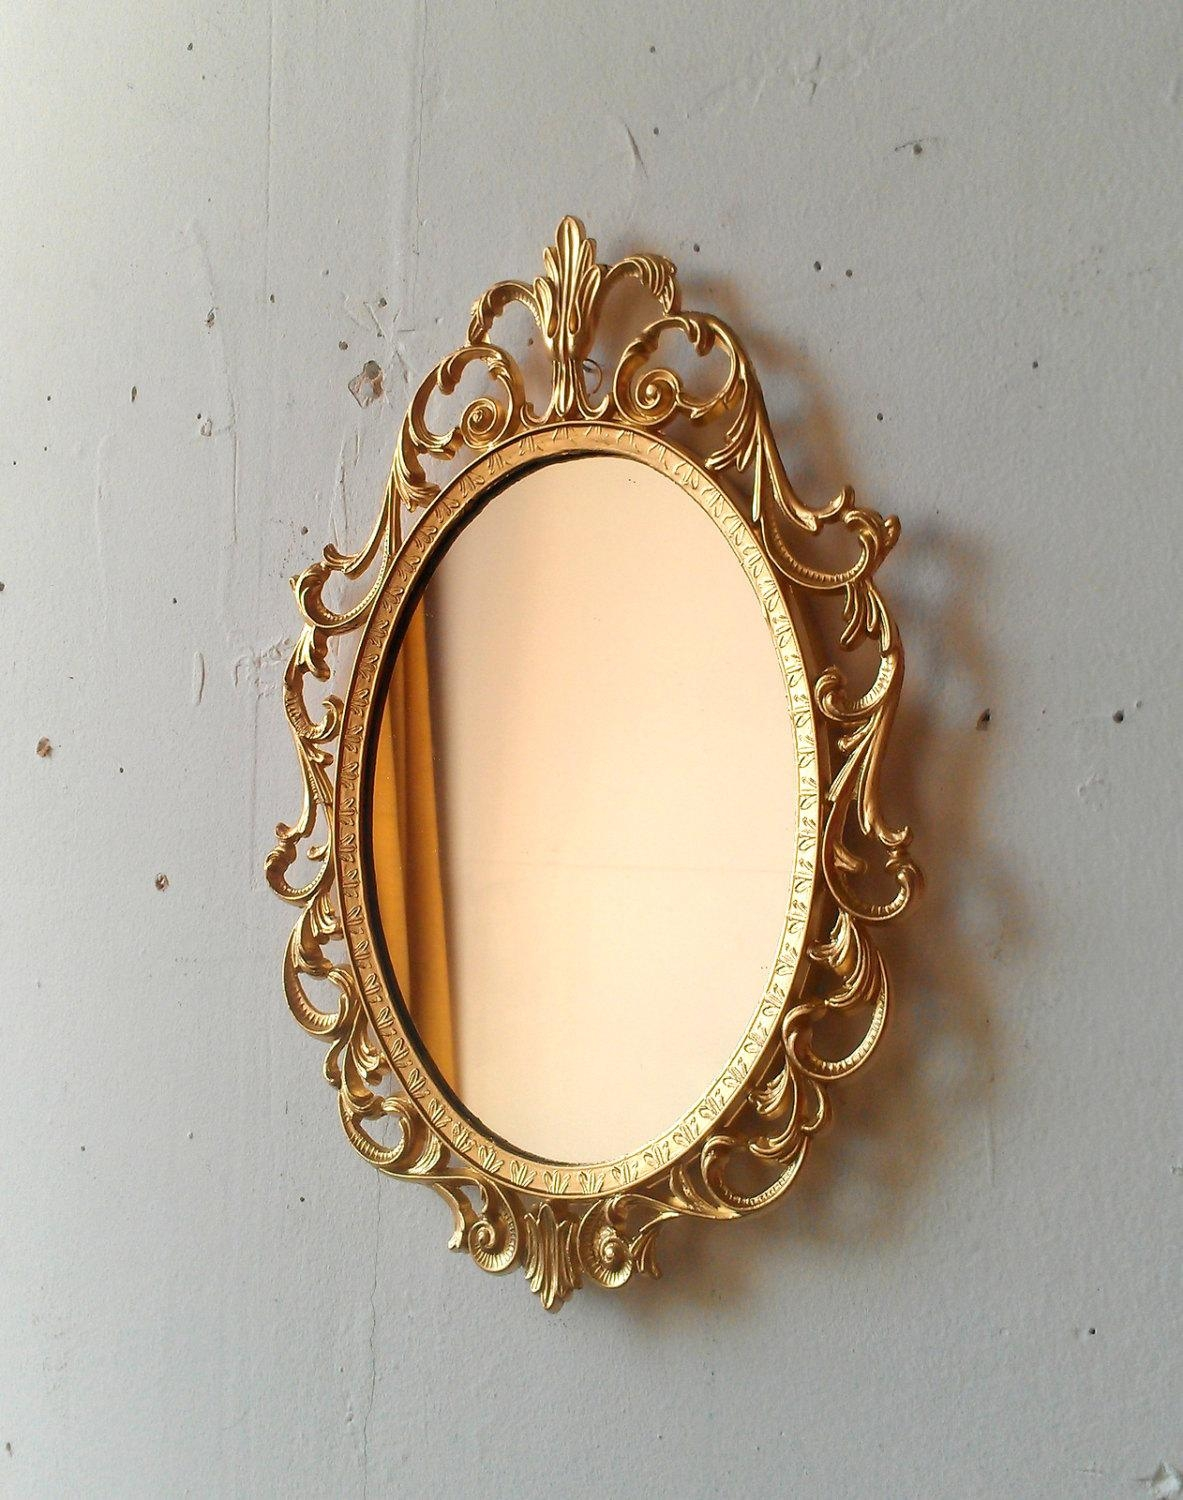 Gold Princess Mirror In Ornate Vintage Oval Frame 107 Throughout Small Gold Mirrors (View 12 of 20)